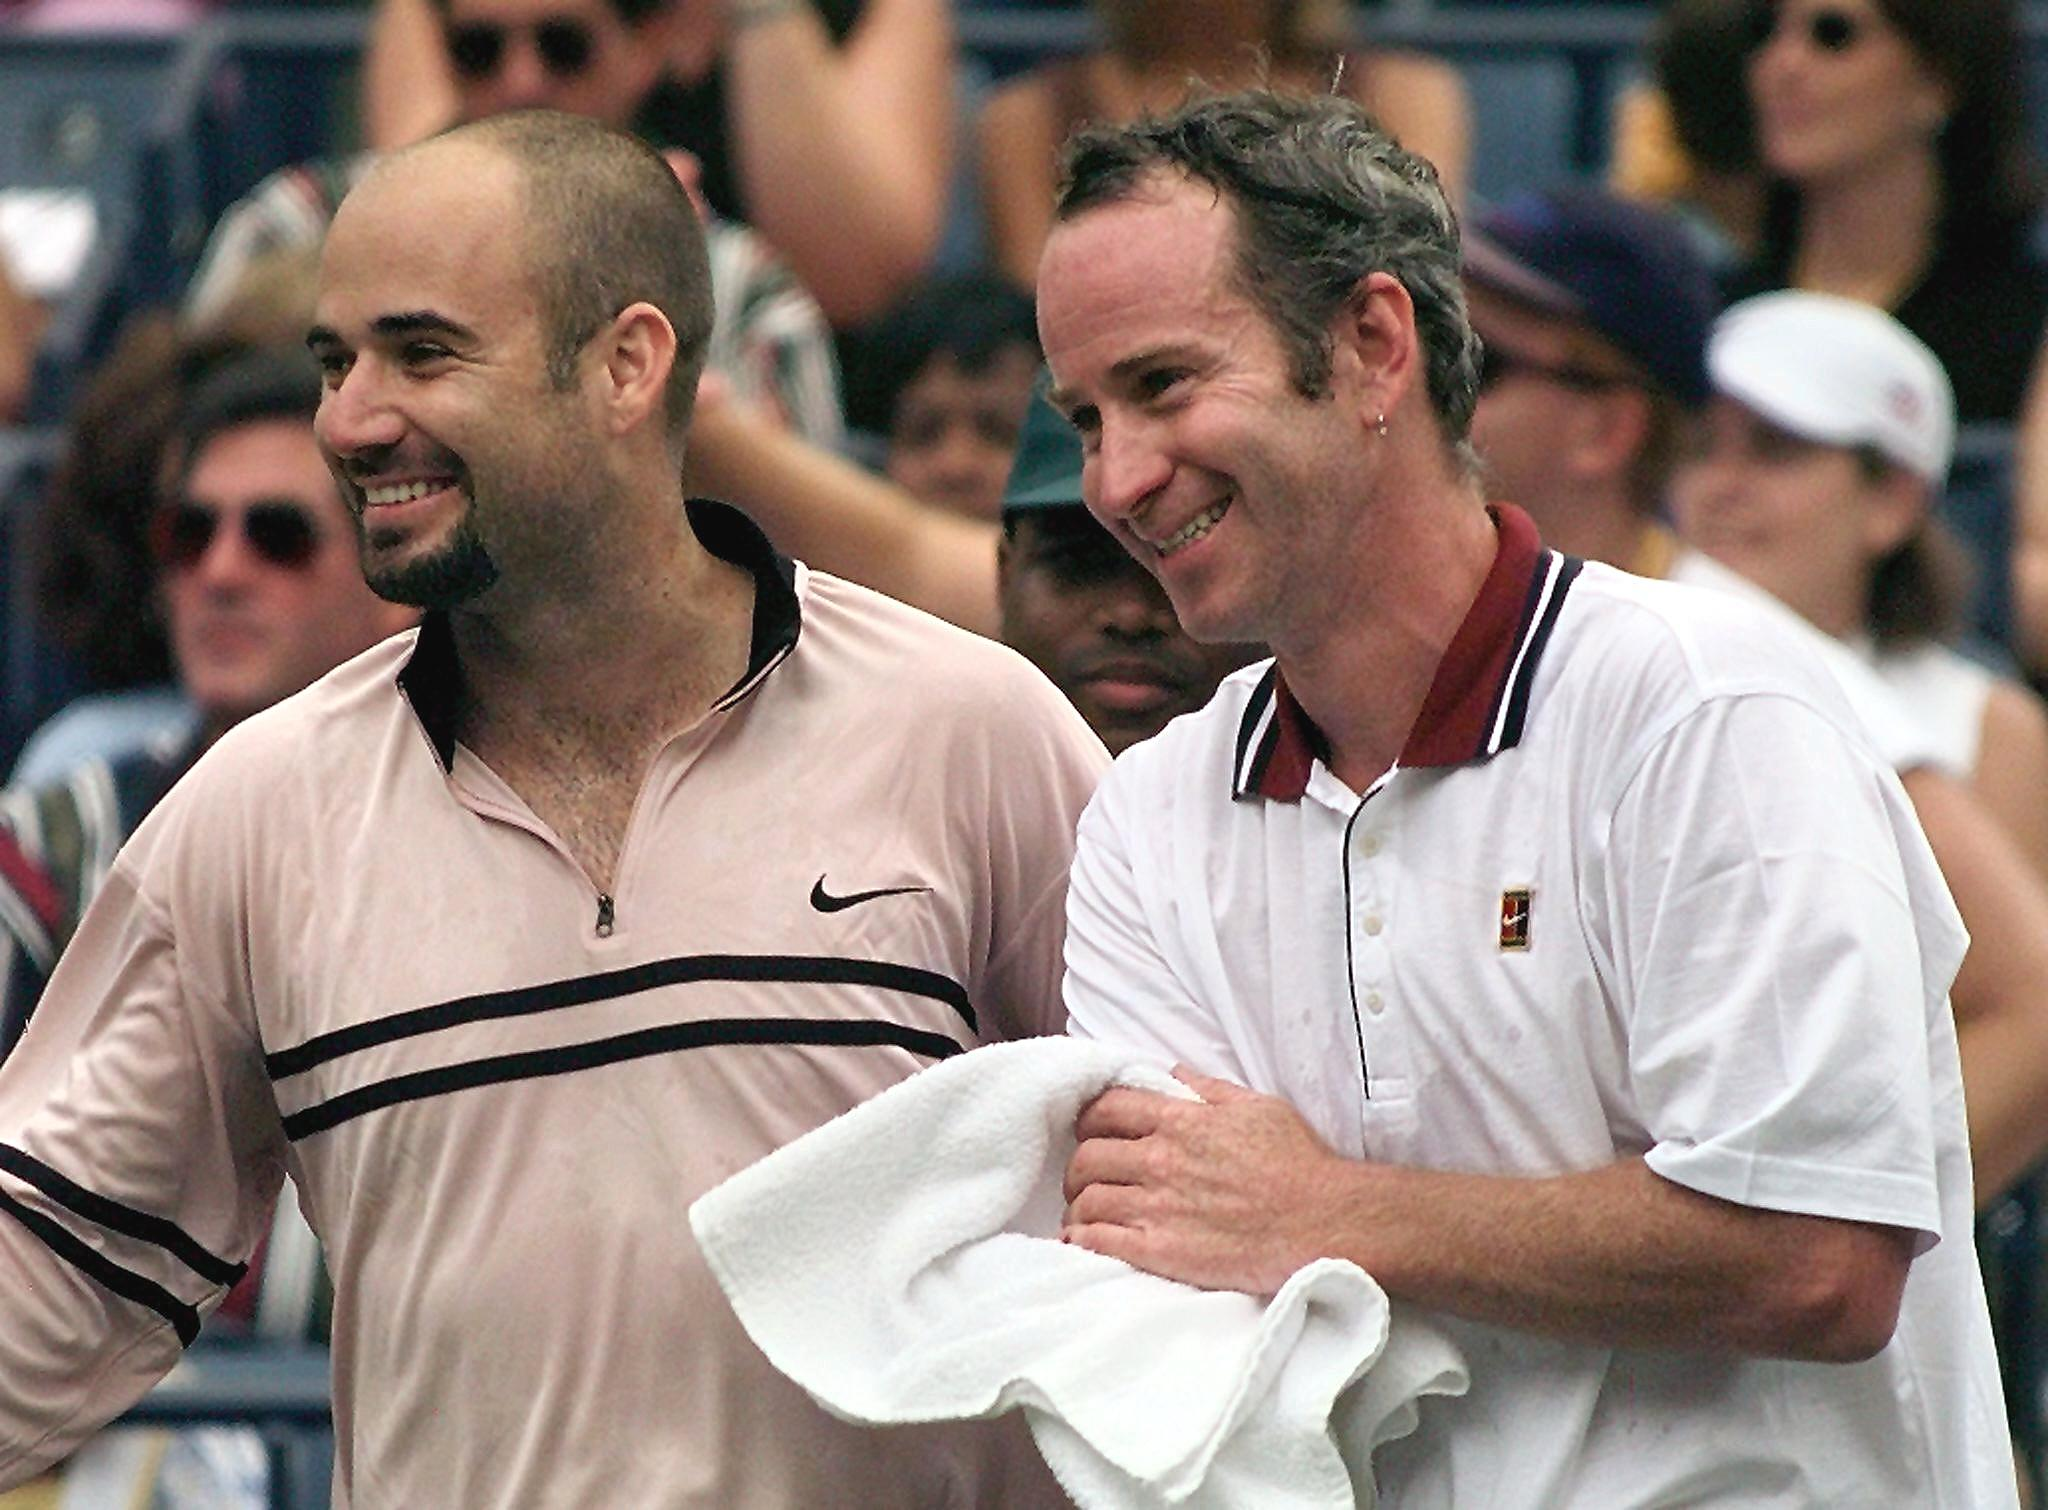 Andre Agassi (L) and John McEnroe laughing after a tennis match.